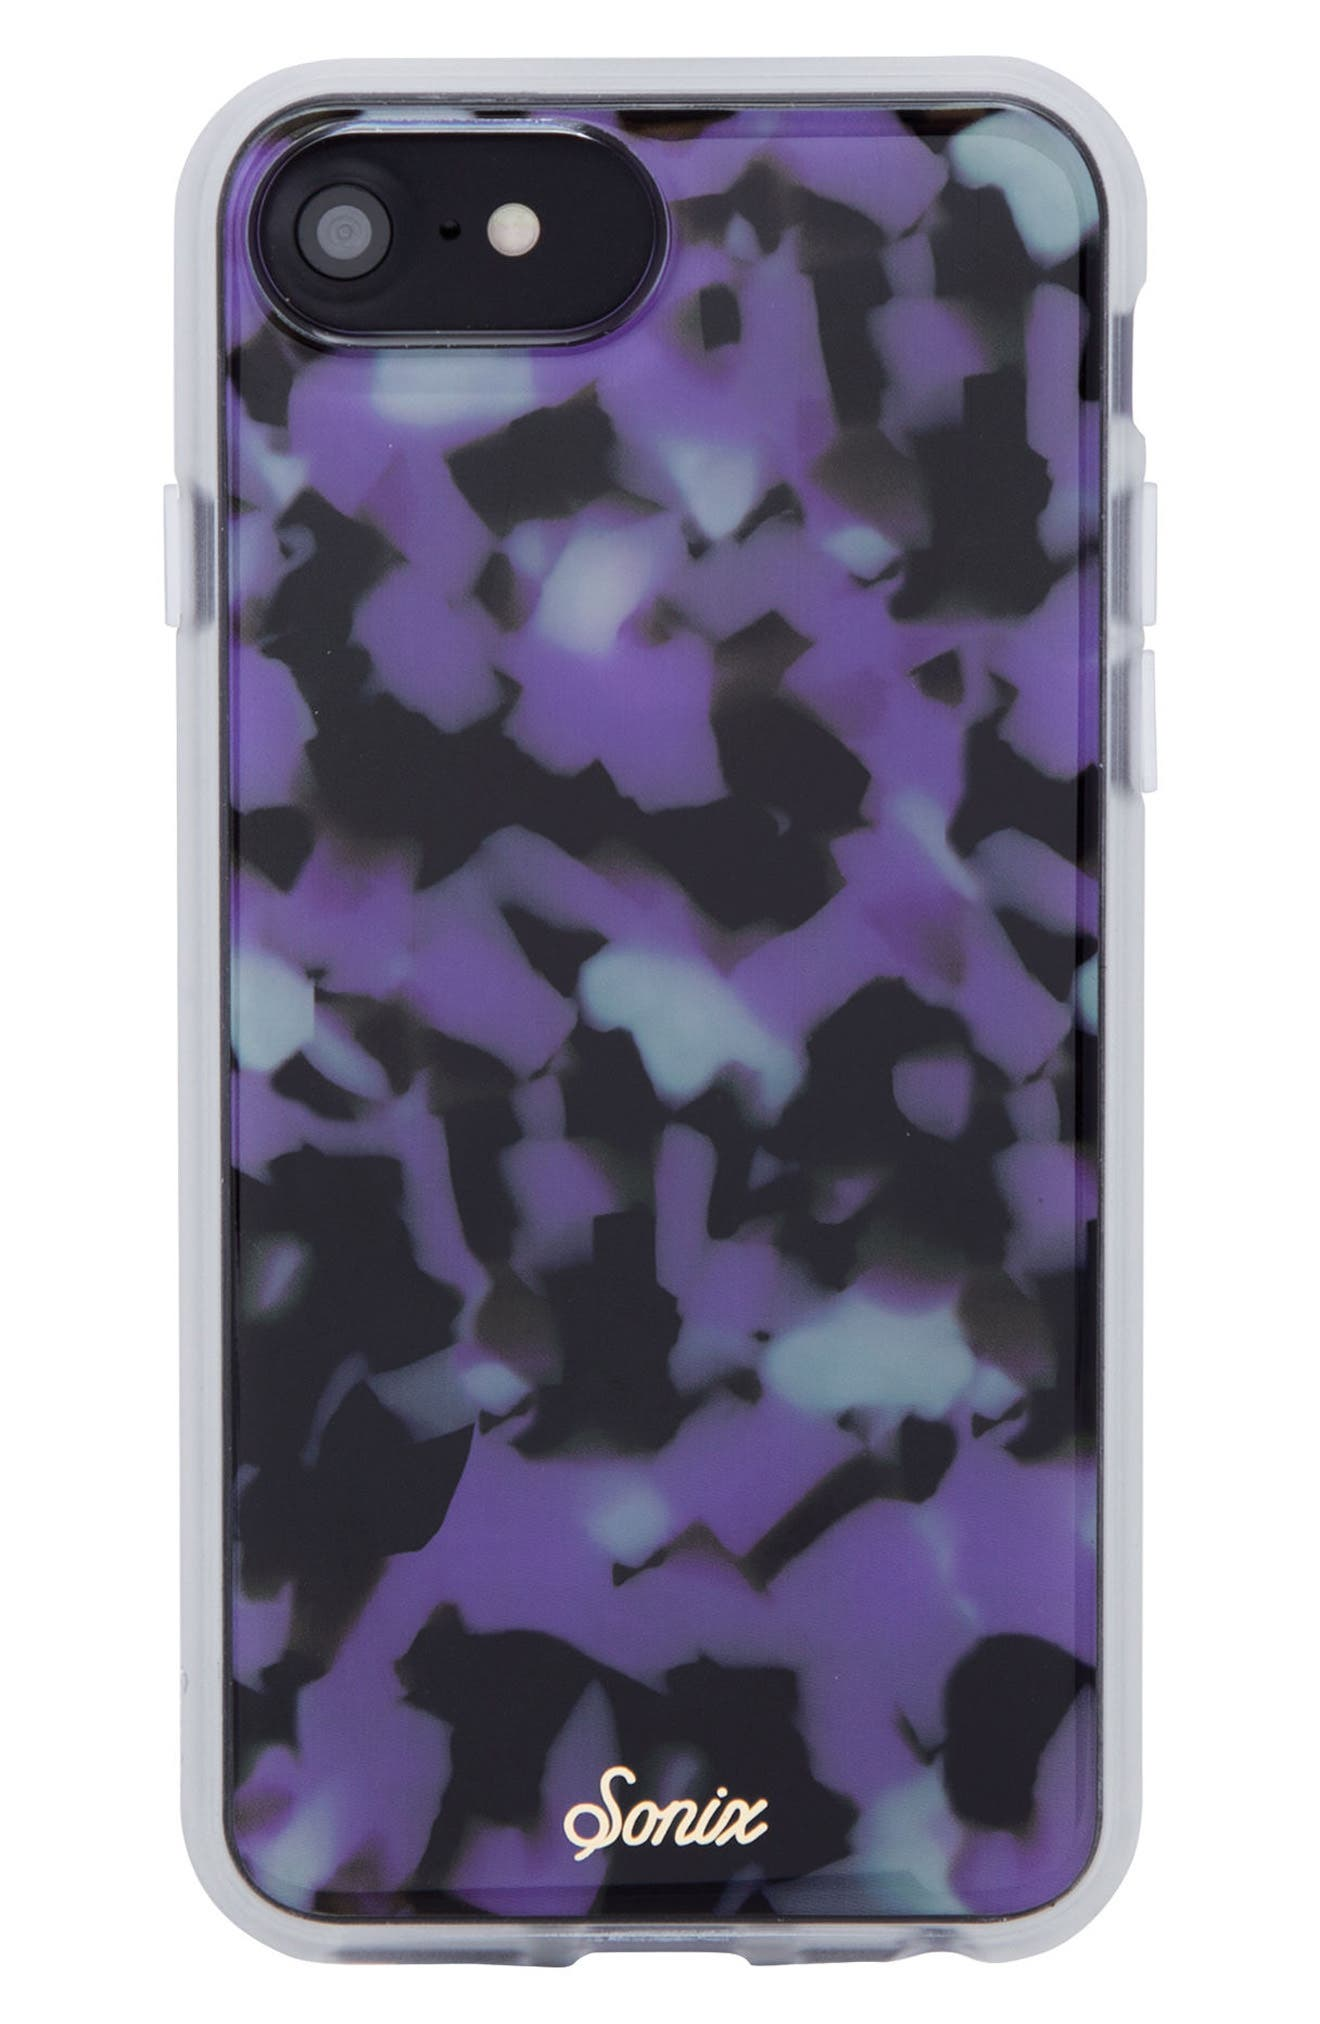 Sonic Terrazzo Lilac iPhone 6/6s/7/8 & 6/6s/7/8 Plus Case,                         Main,                         color, LILAC